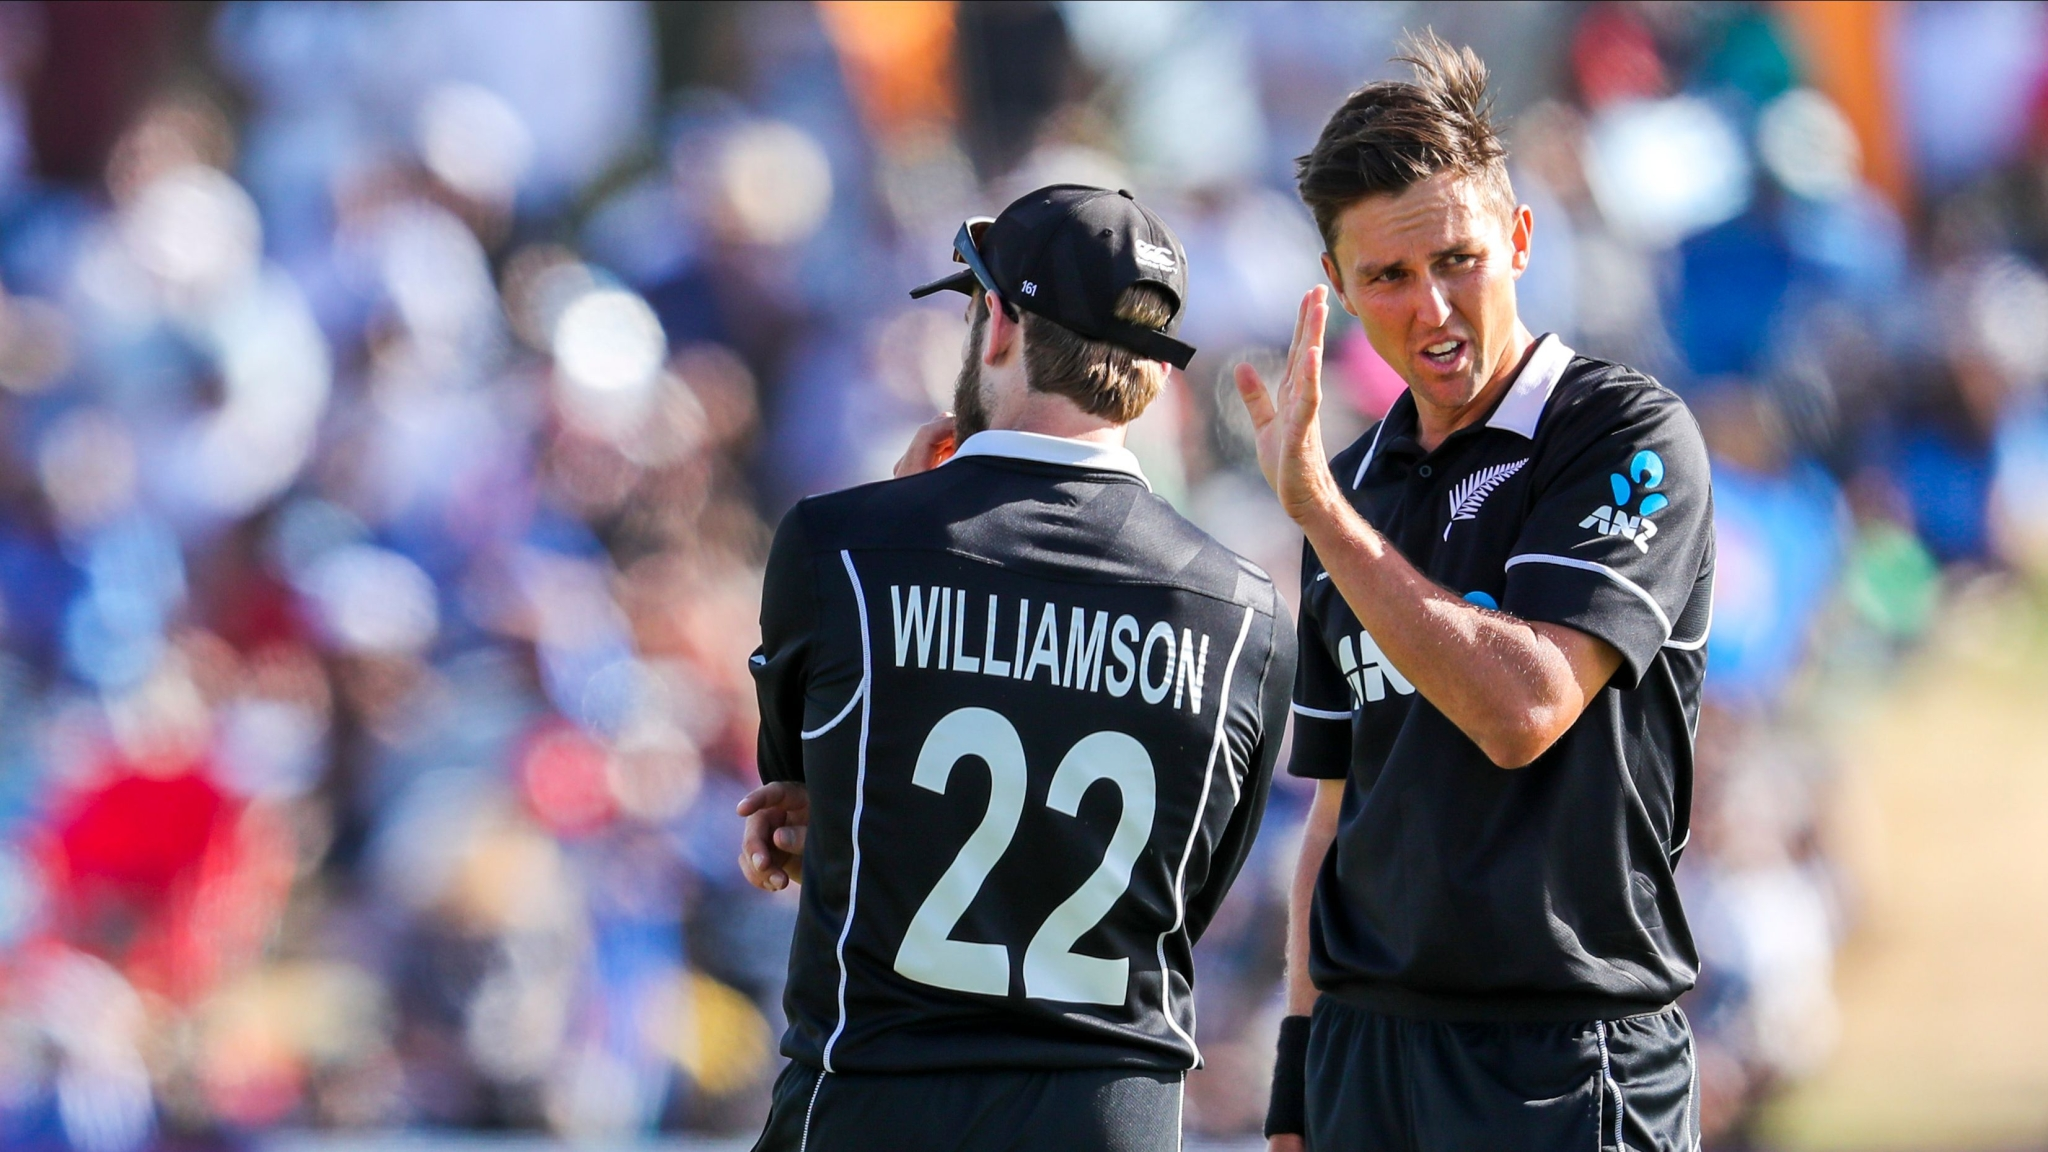 Williamson & Co Look to Lead NZ To First WC Title (SWOT)